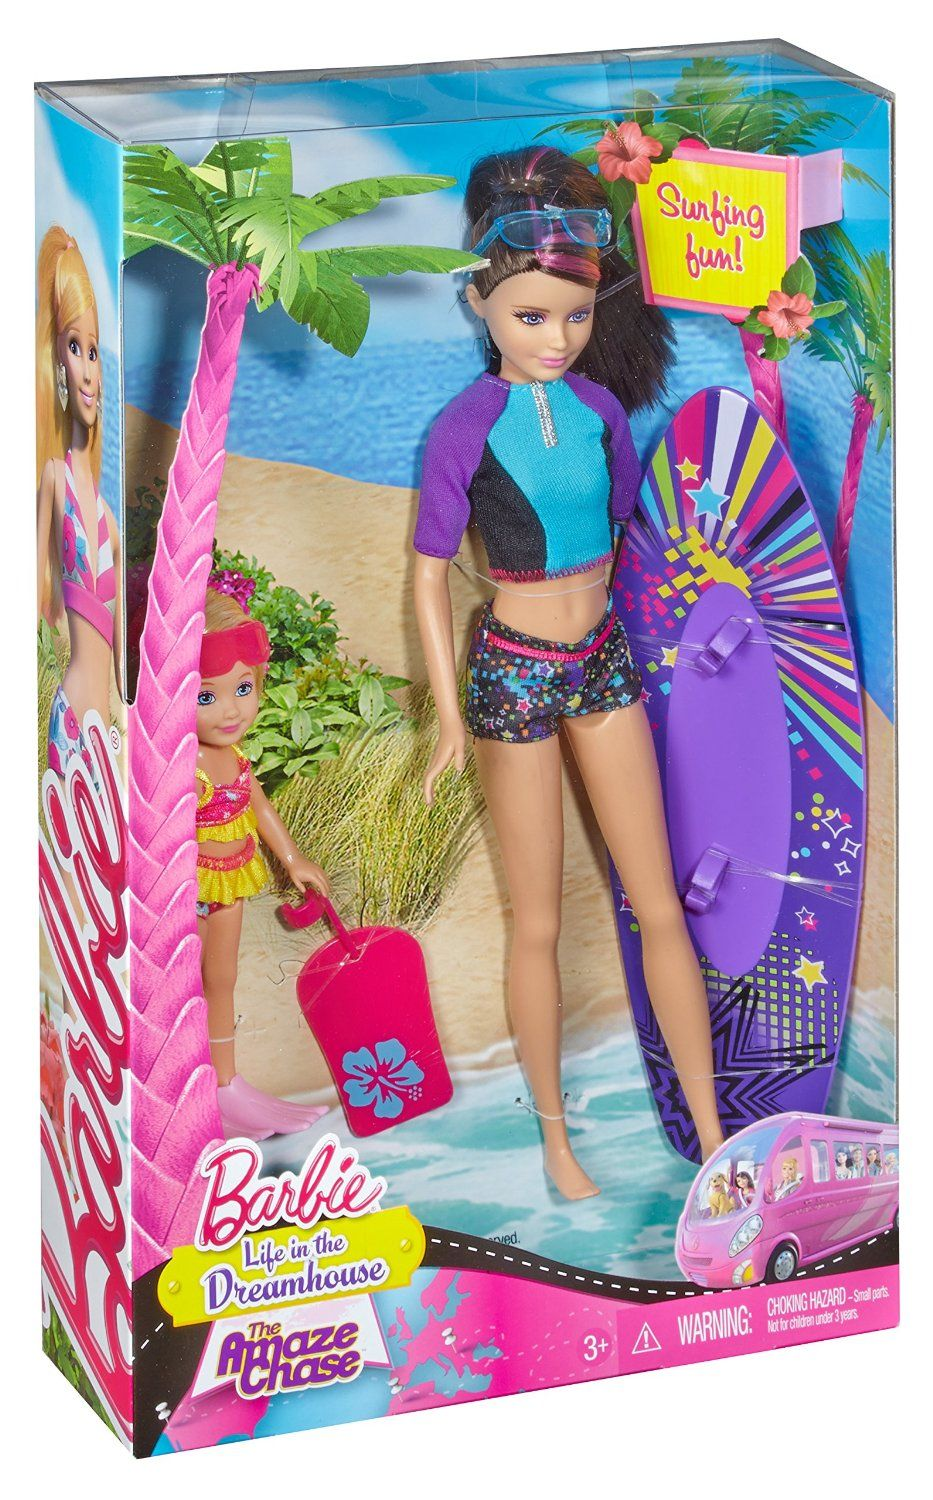 Barbie deluxe furniture stovetop to tabletop kitchen doll target - Amazon Com Barbie Life In The Dreamhouse The Amaze Chase Surfing Skipper And Chelsea